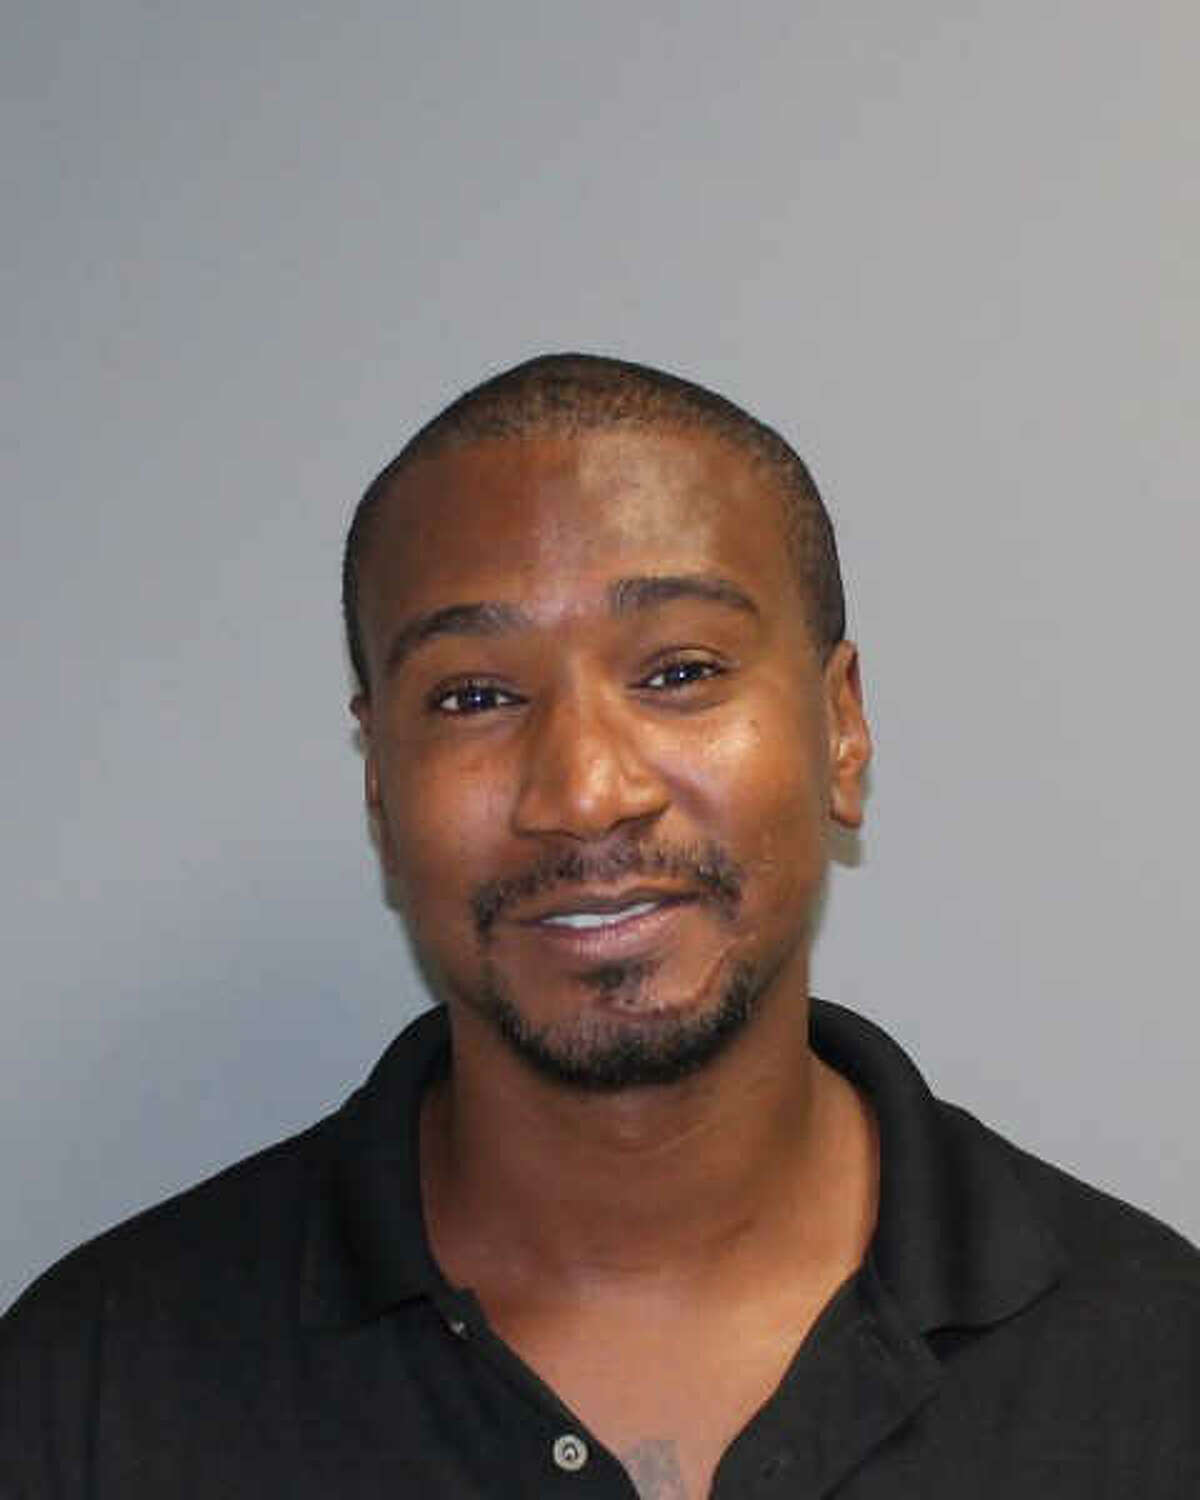 """A mugshot of Vamond """"Wooley King"""" Elmore, the man wanted in connection with the slaying of Jimmy Martinez."""